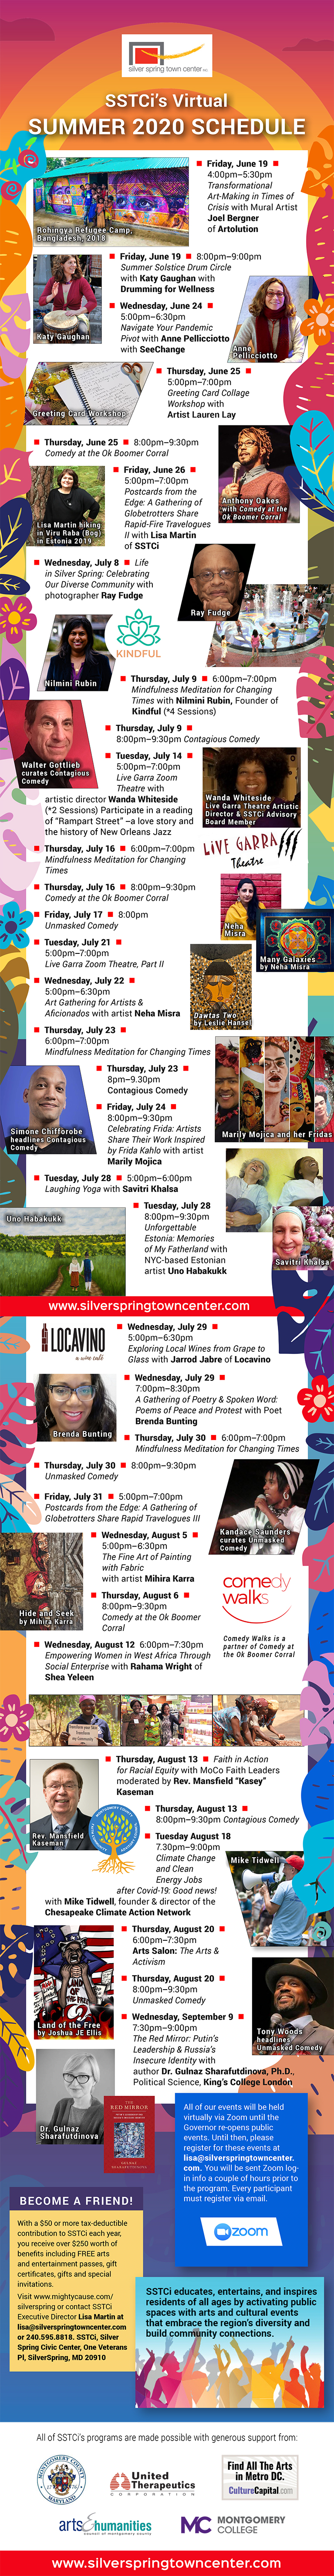 Silver Spring Town Center Summer 2020 Events